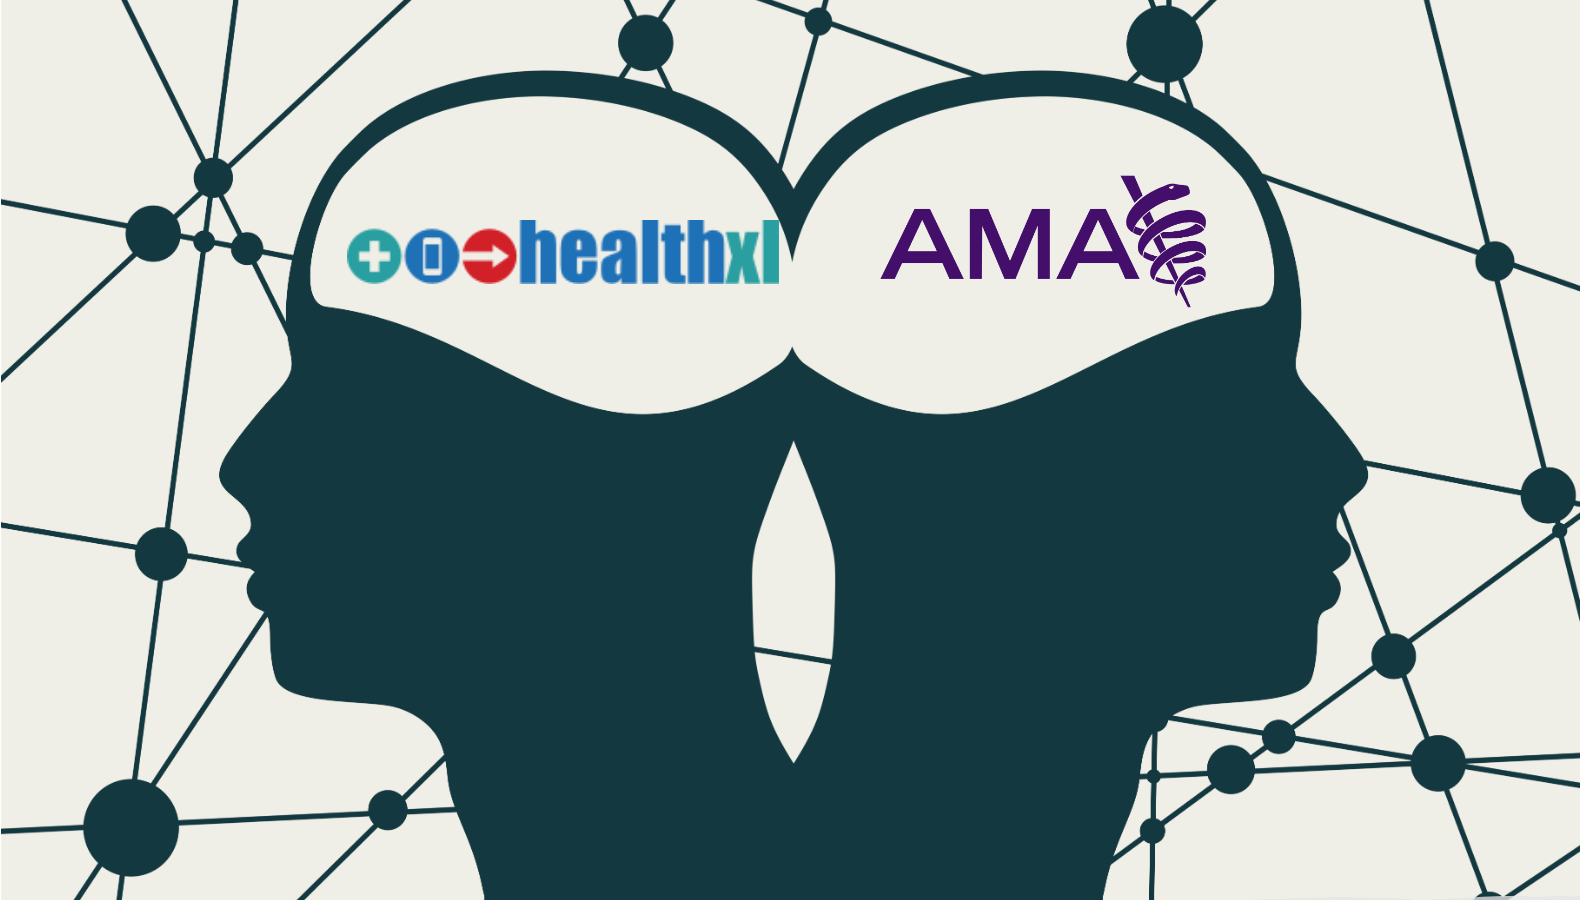 AMA and HealthXL: Supporting Evidence Frameworks For Responsible Healthcare Innovation